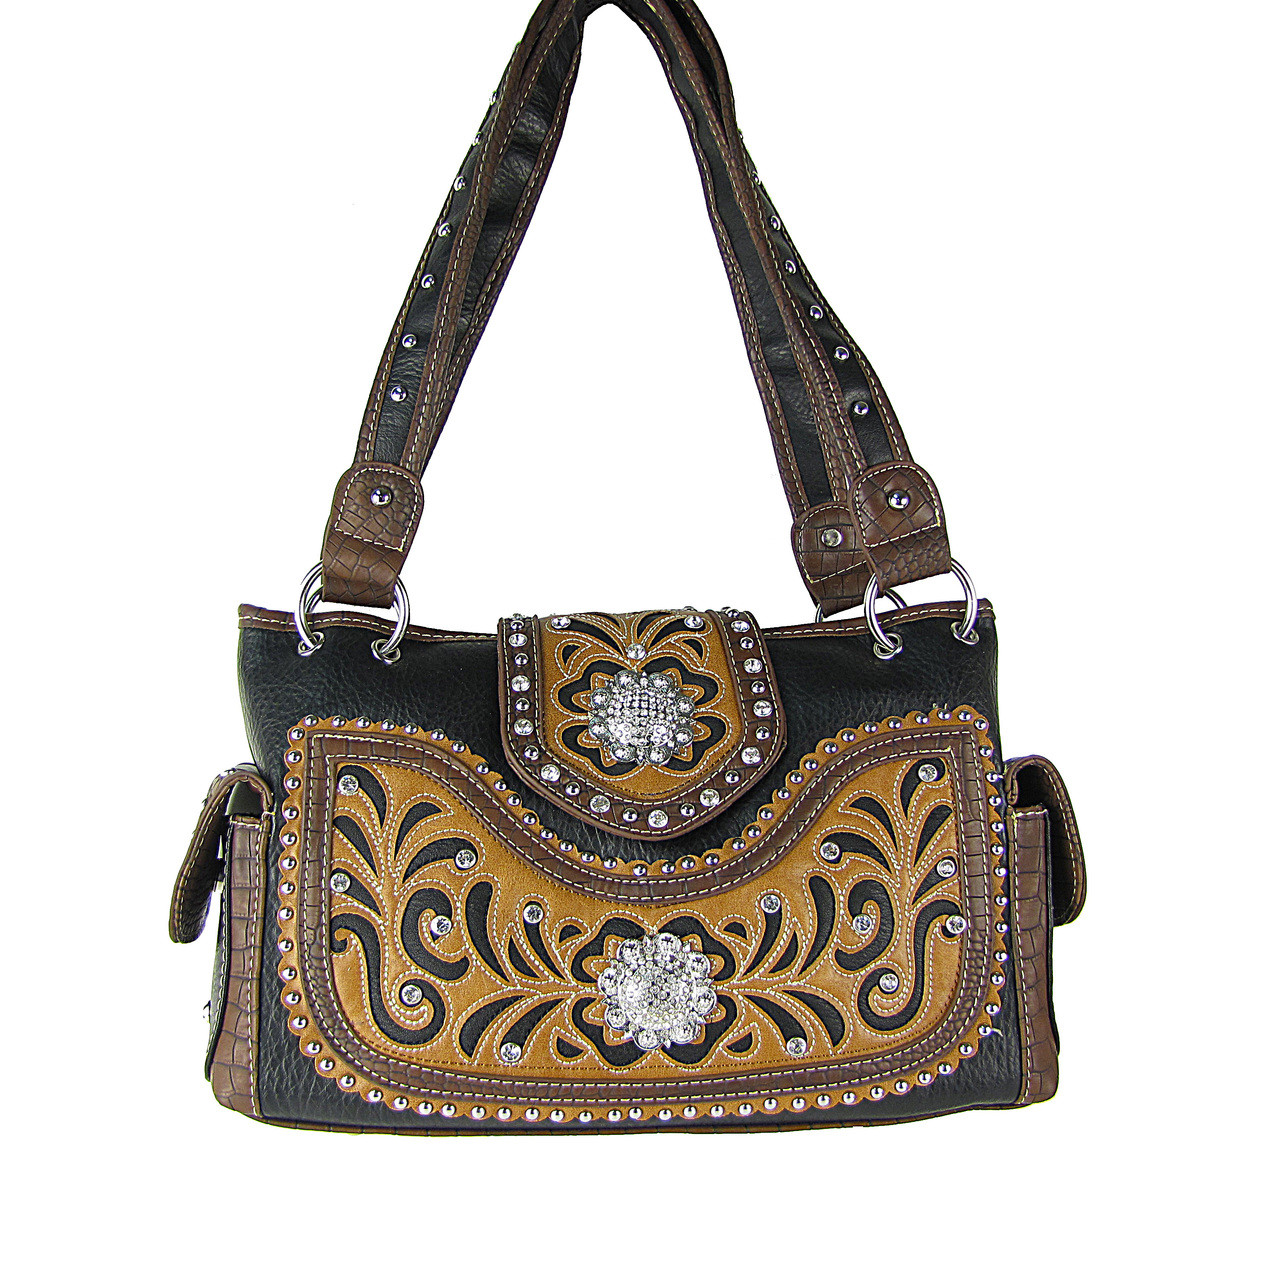 BLACK WESTERN STUDDED FLOWER RHINESTONE LOOK SHOULDER HANDBAG HB1-CHF0042BLK